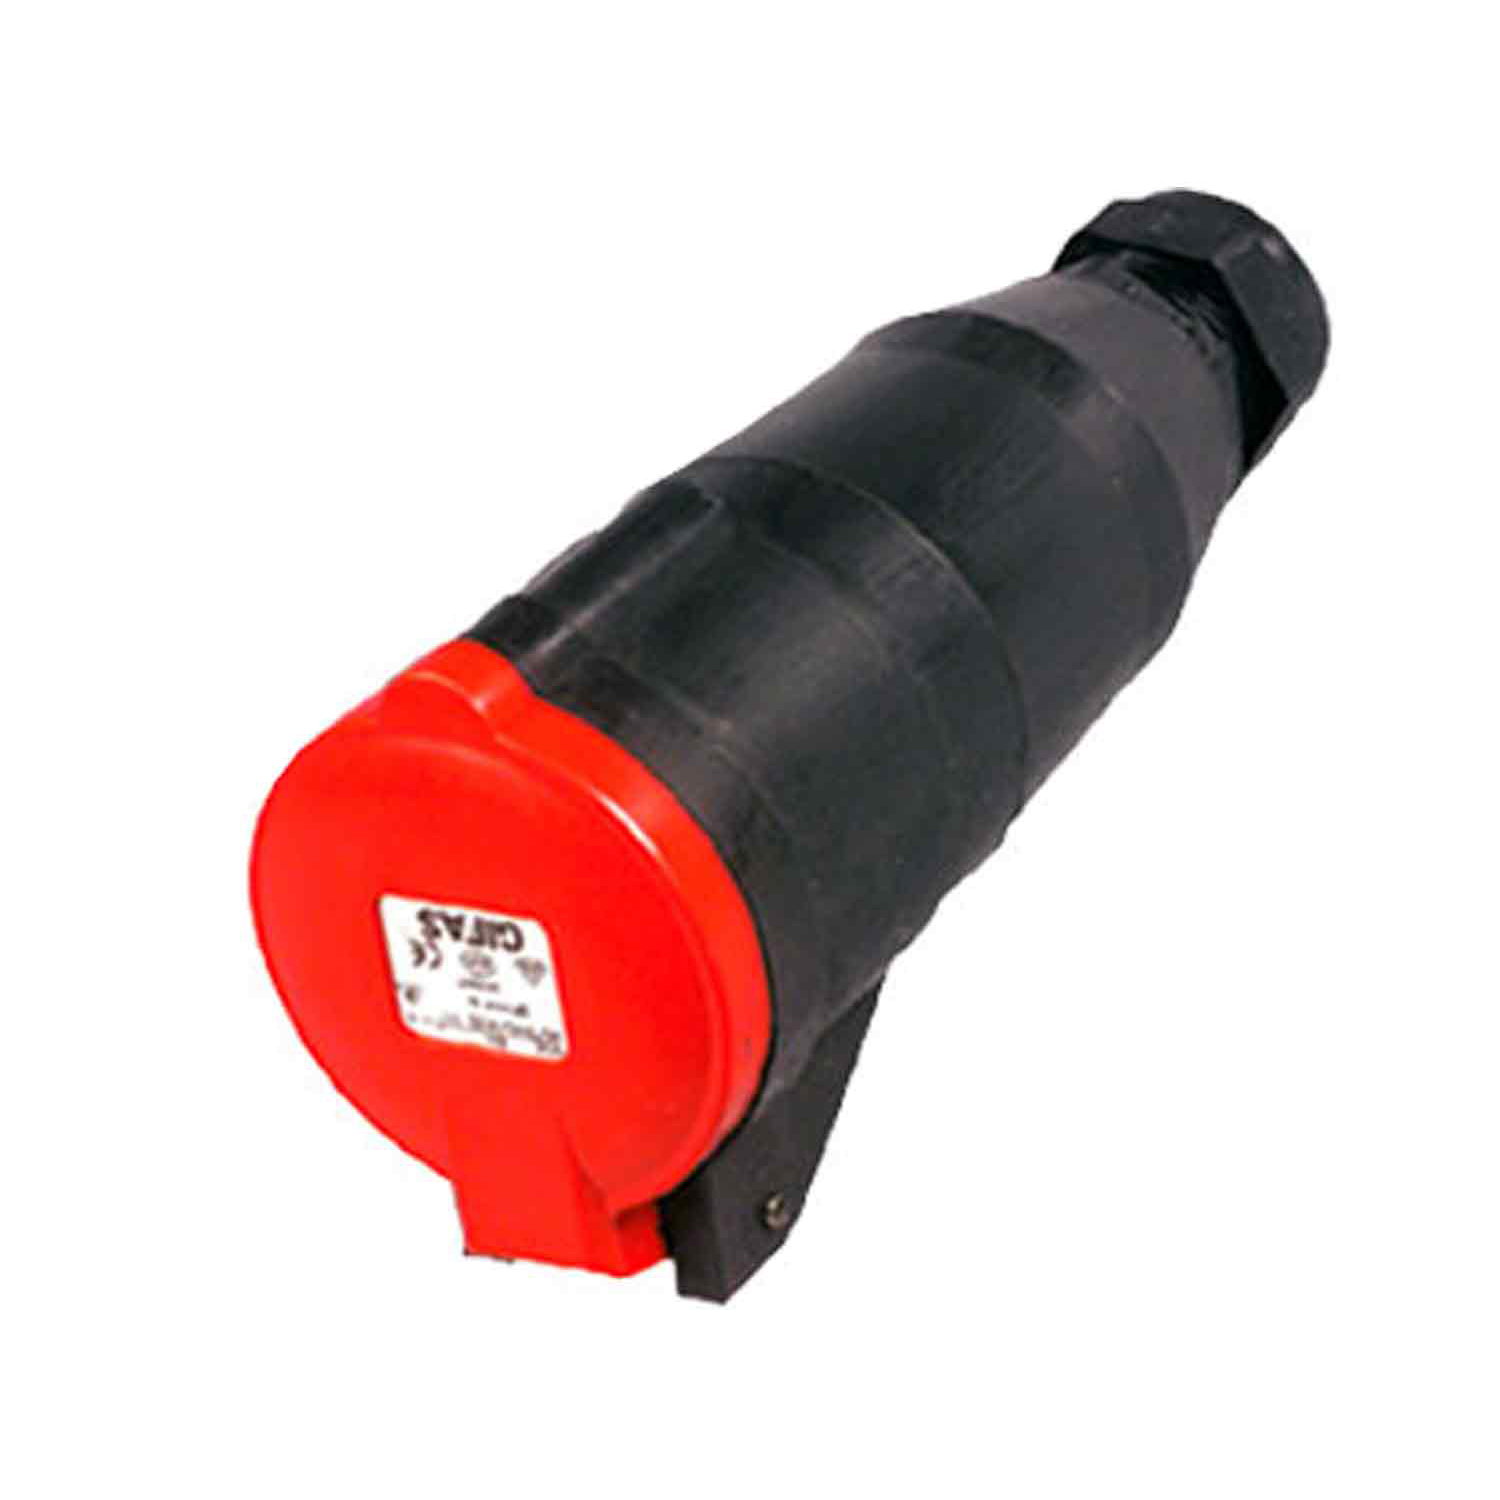 GIFAS Solid Rubber CEE Connector 16A 400V 5-pole (107147)